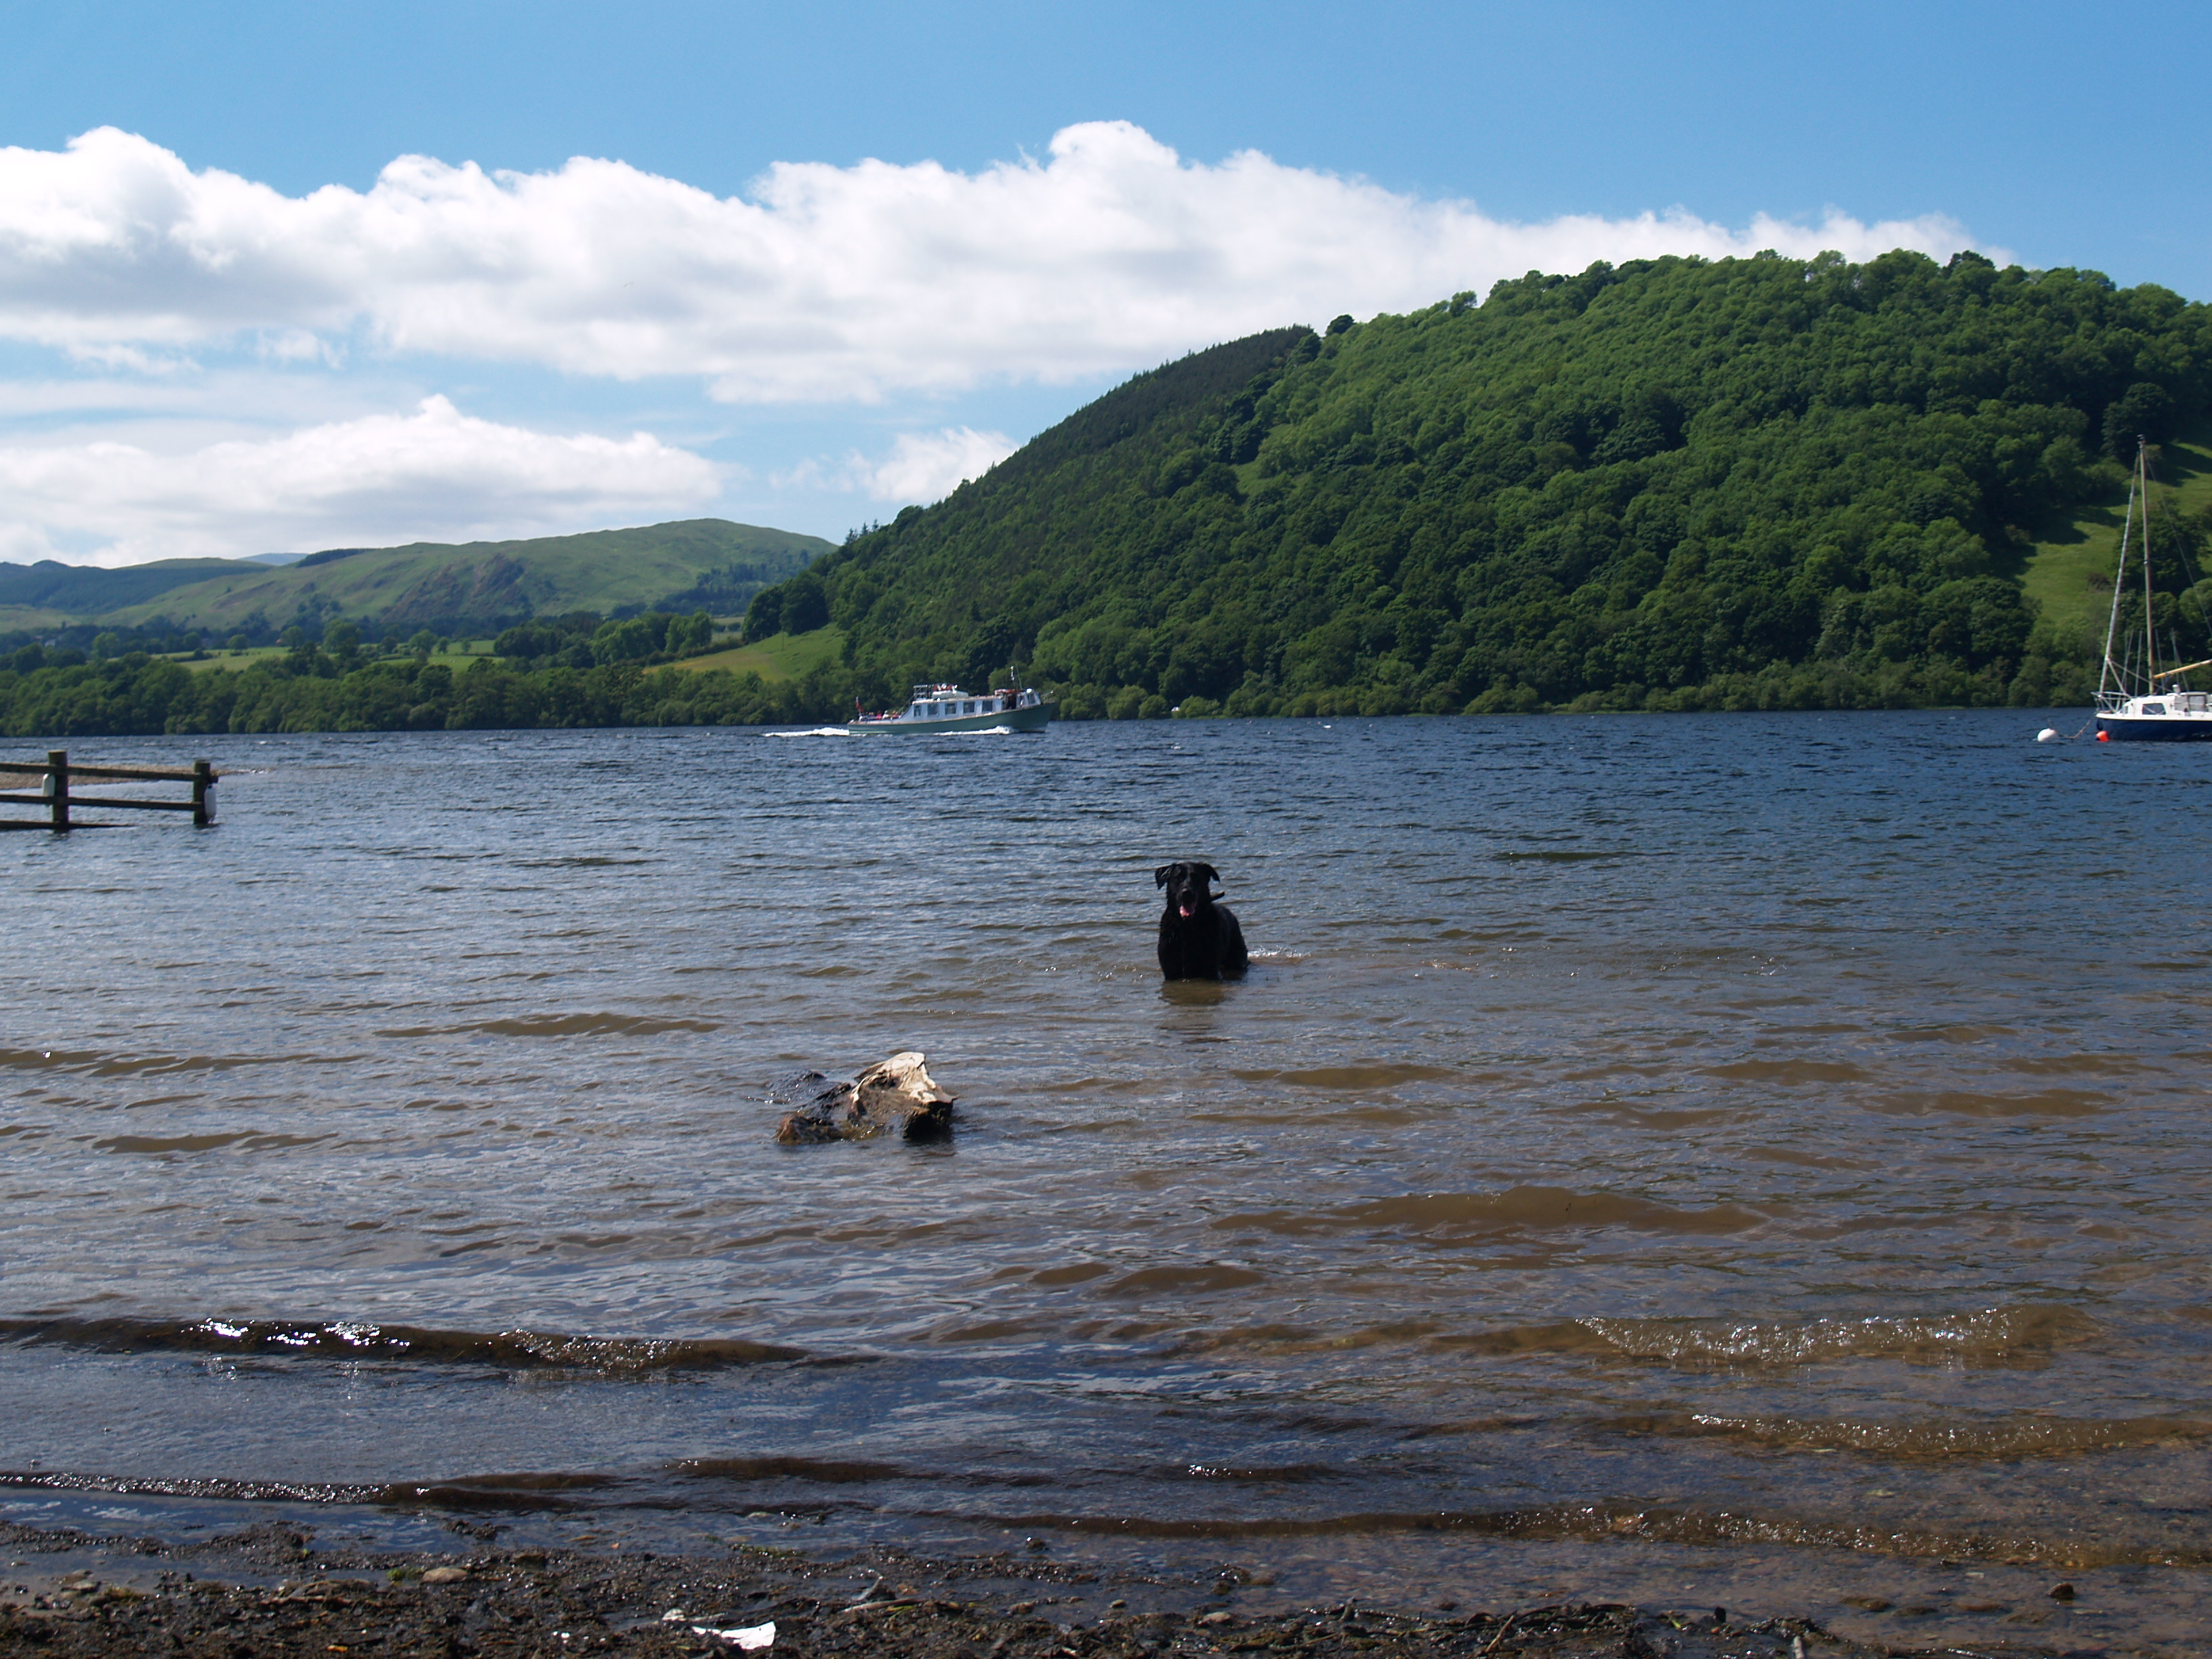 Ullswater lies in the North East of the Lake District and is nine miles long. It is sometimes compared to the lakes of Switzerland.